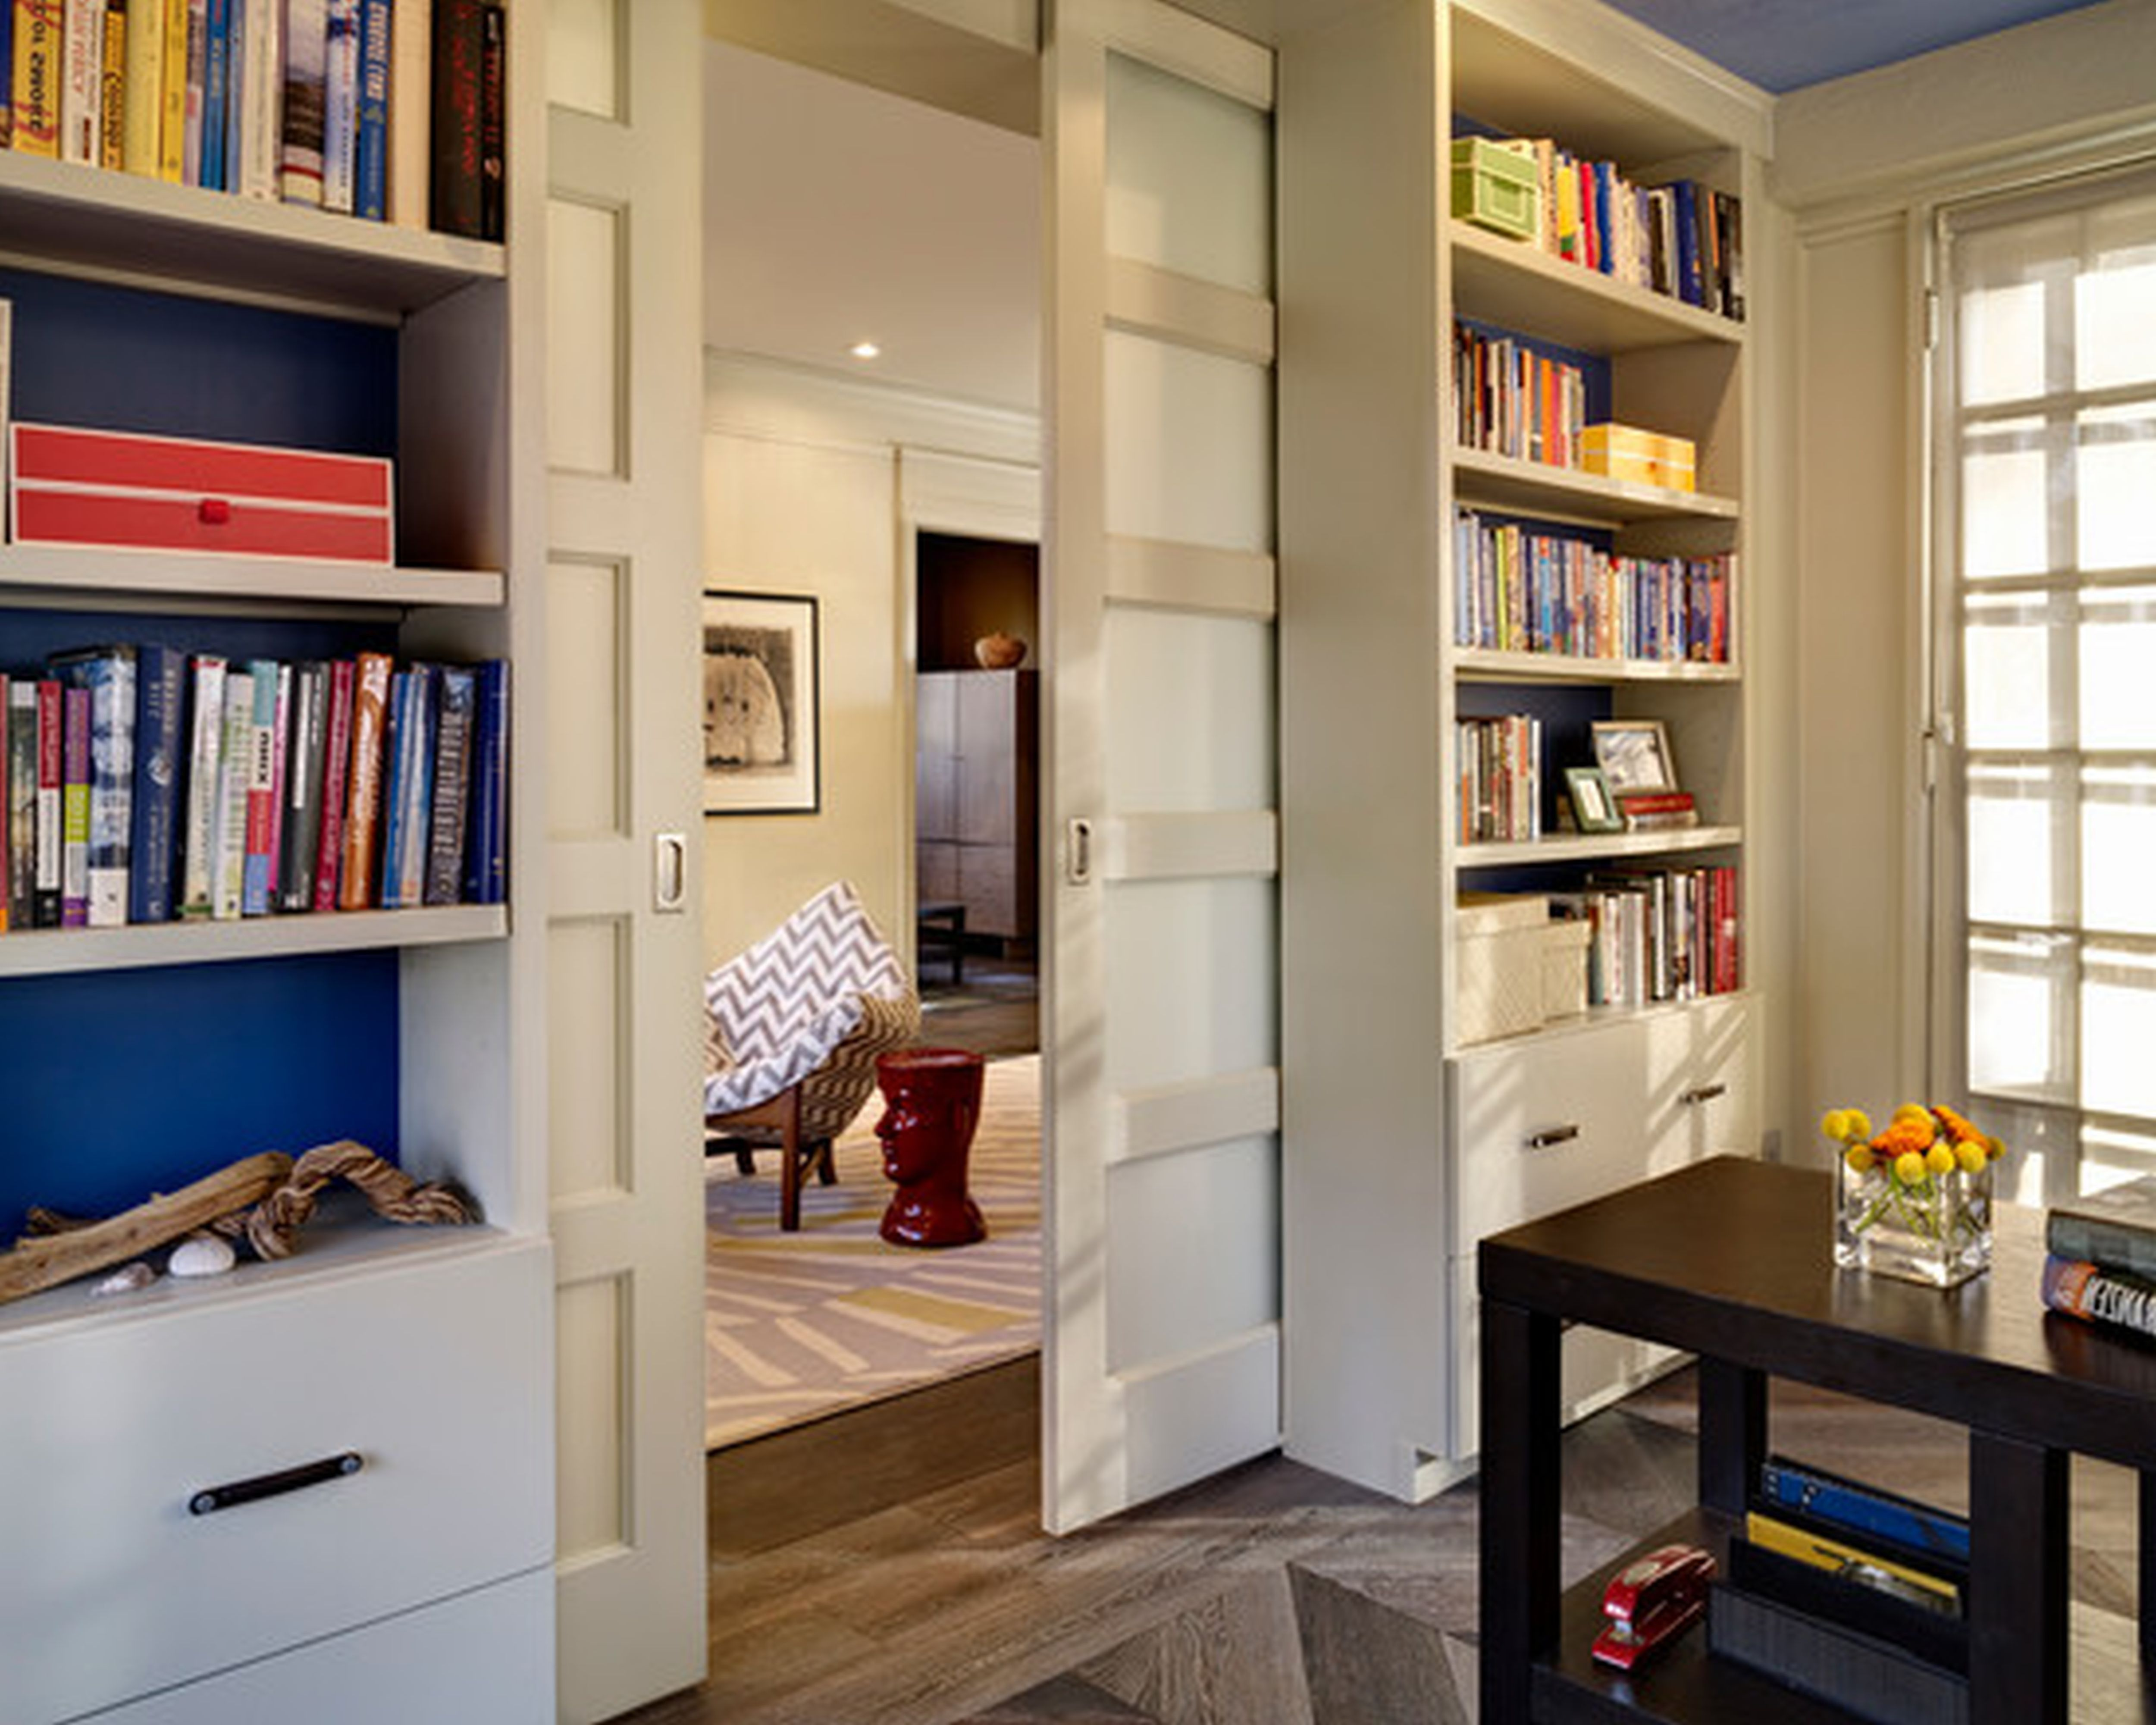 Home Office Small Space Home Office Appealing Modern Interior Design Office  Space Interior Decorating A Home Office Guest Room Office Organizing A Home  ...